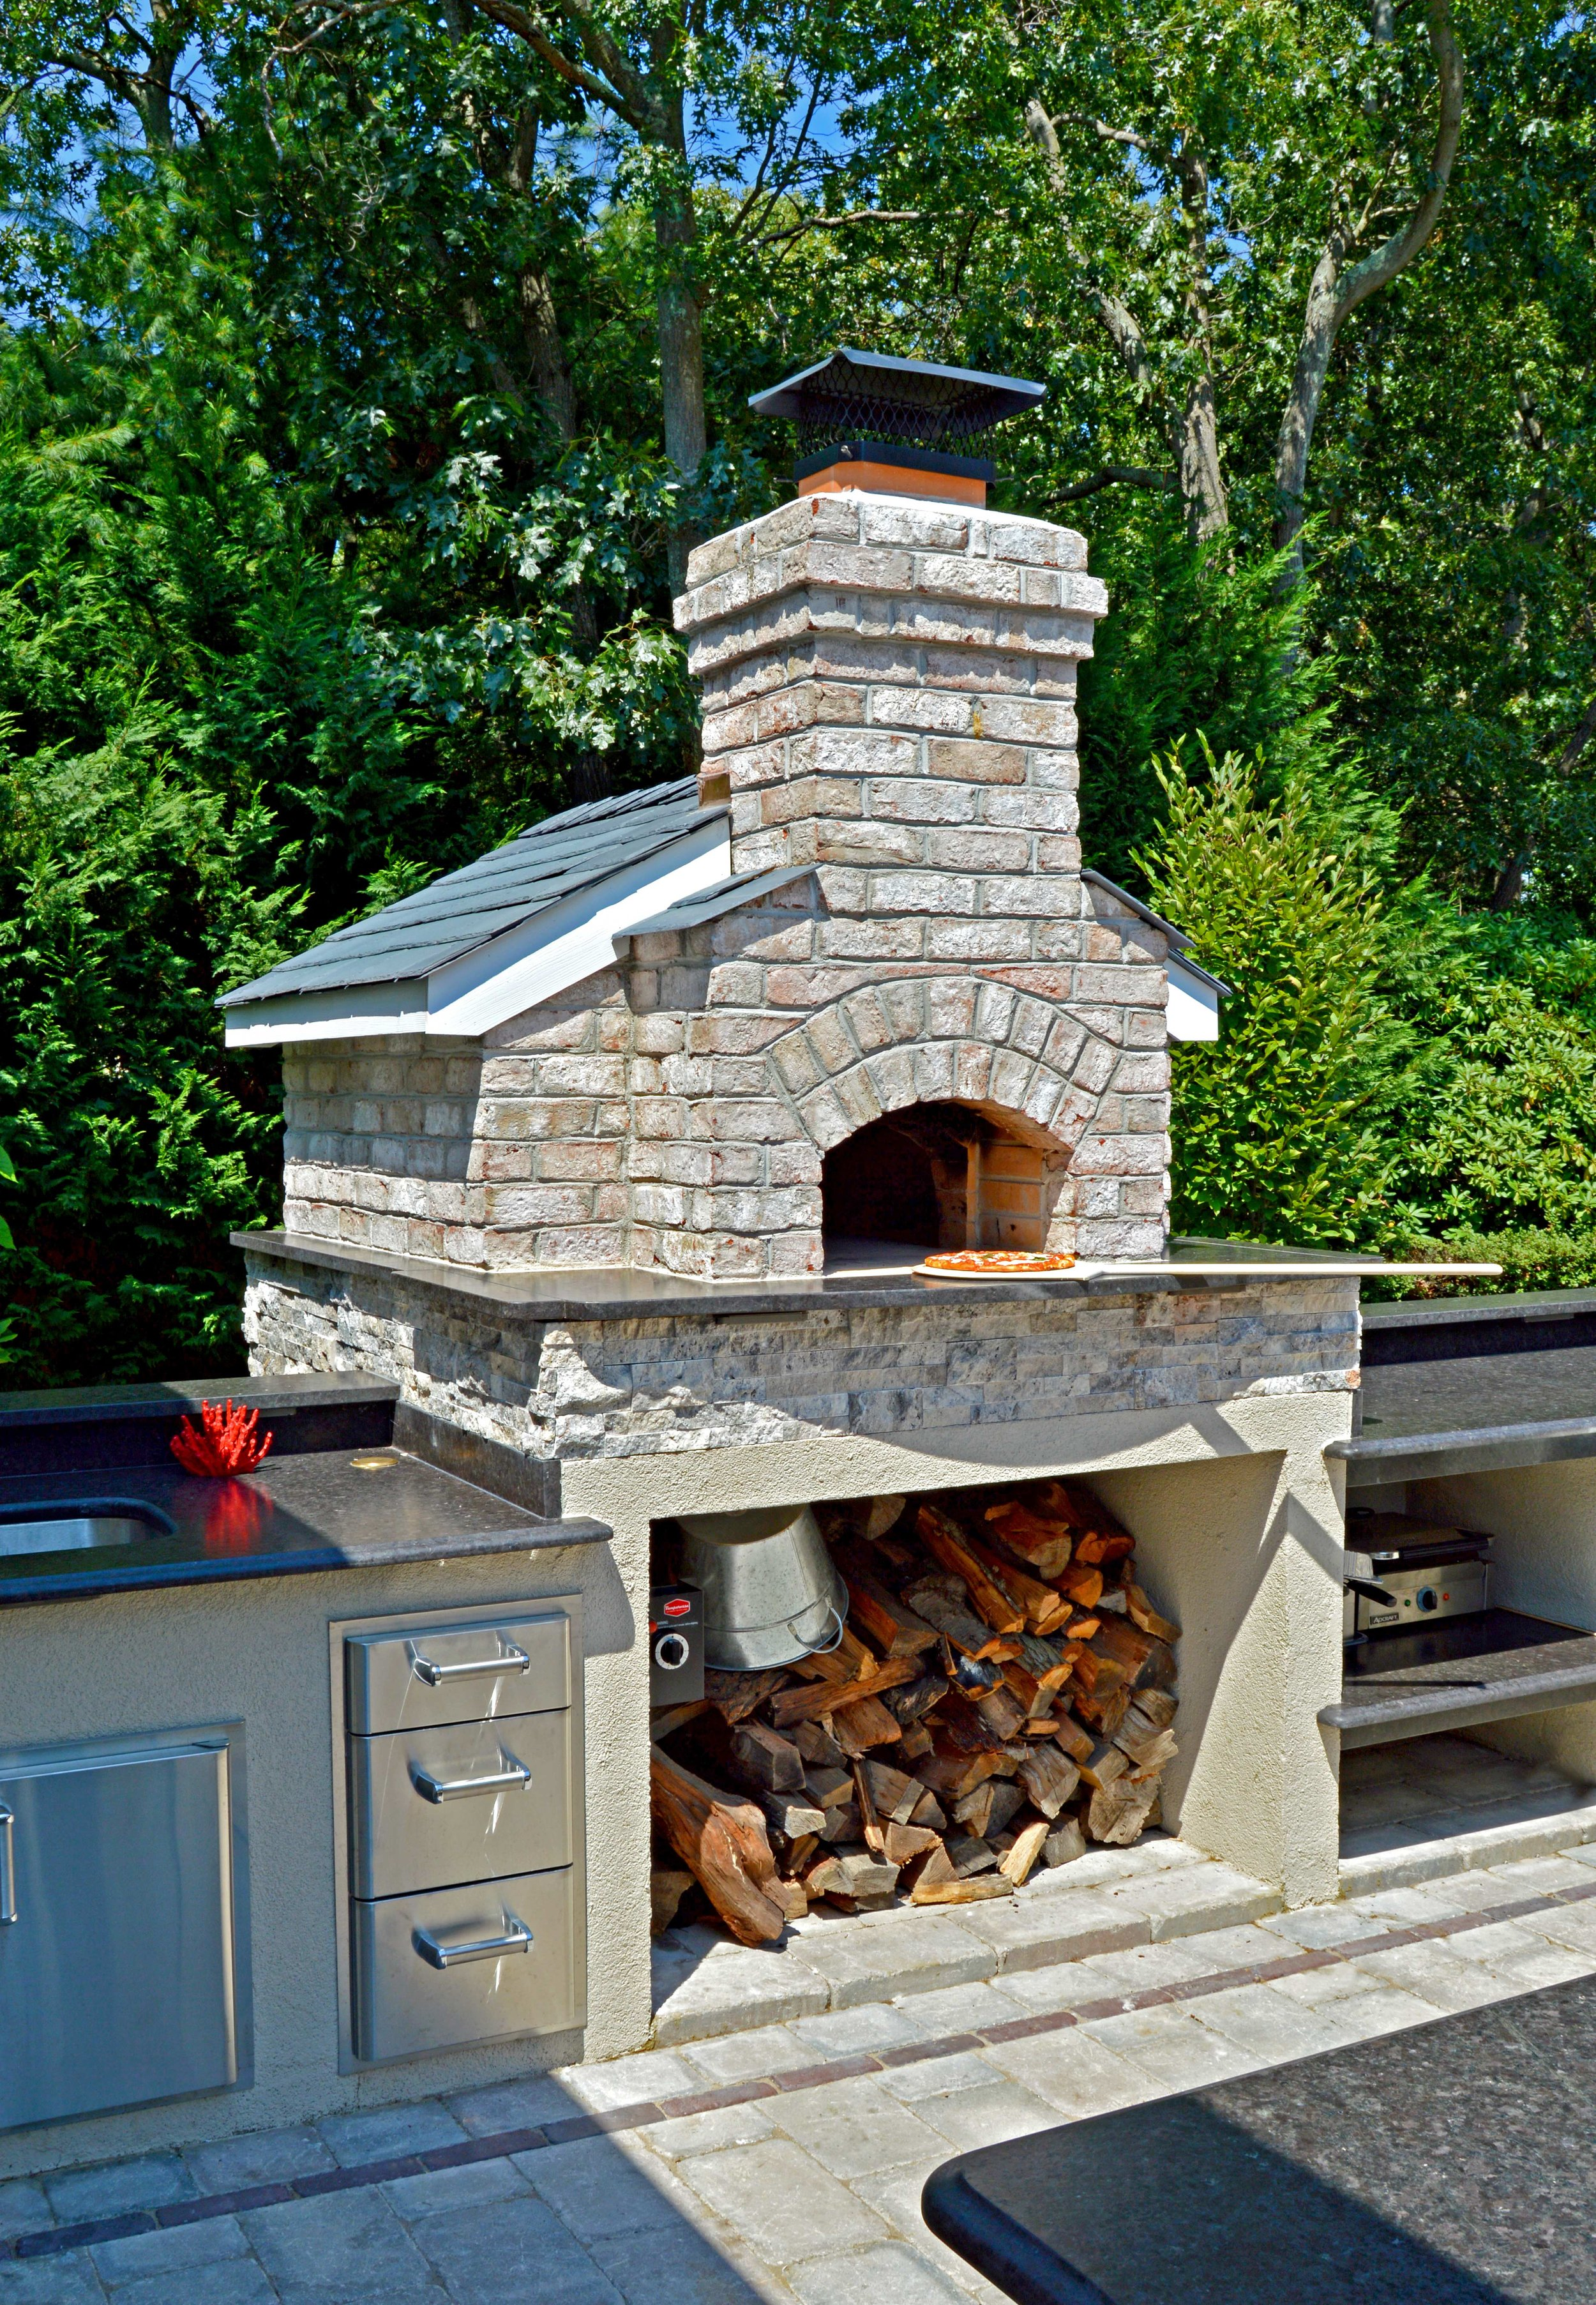 outdoor kitchen oven modular kitchens built in bbqs plainview ny long island and pizza